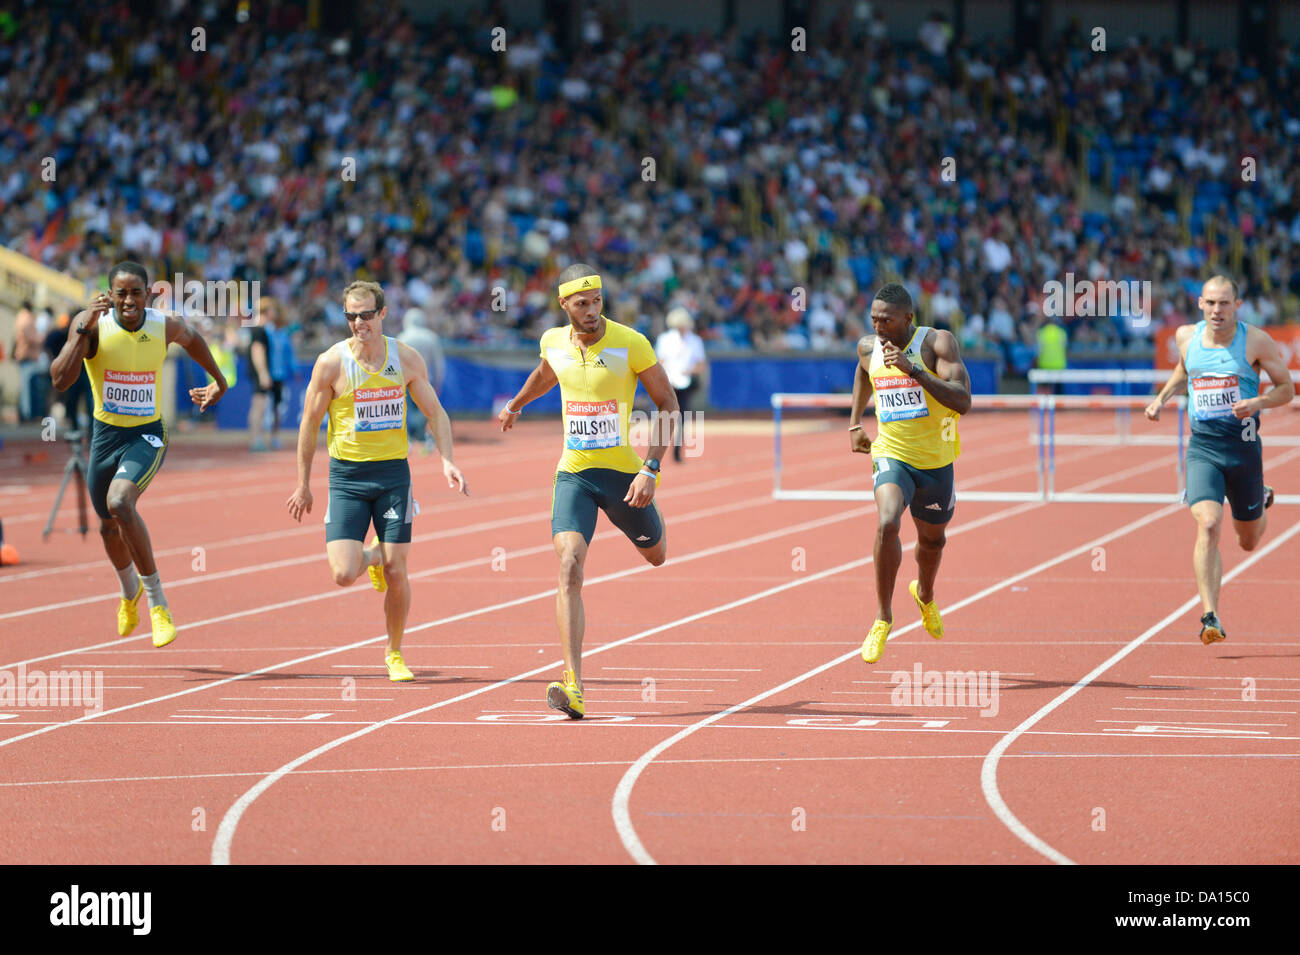 Birmingham, UK. 30th June 2013. Javier Culson of Puerto Rico finishes 1st in the men's 400m hurdles at the 2013 - Stock Image